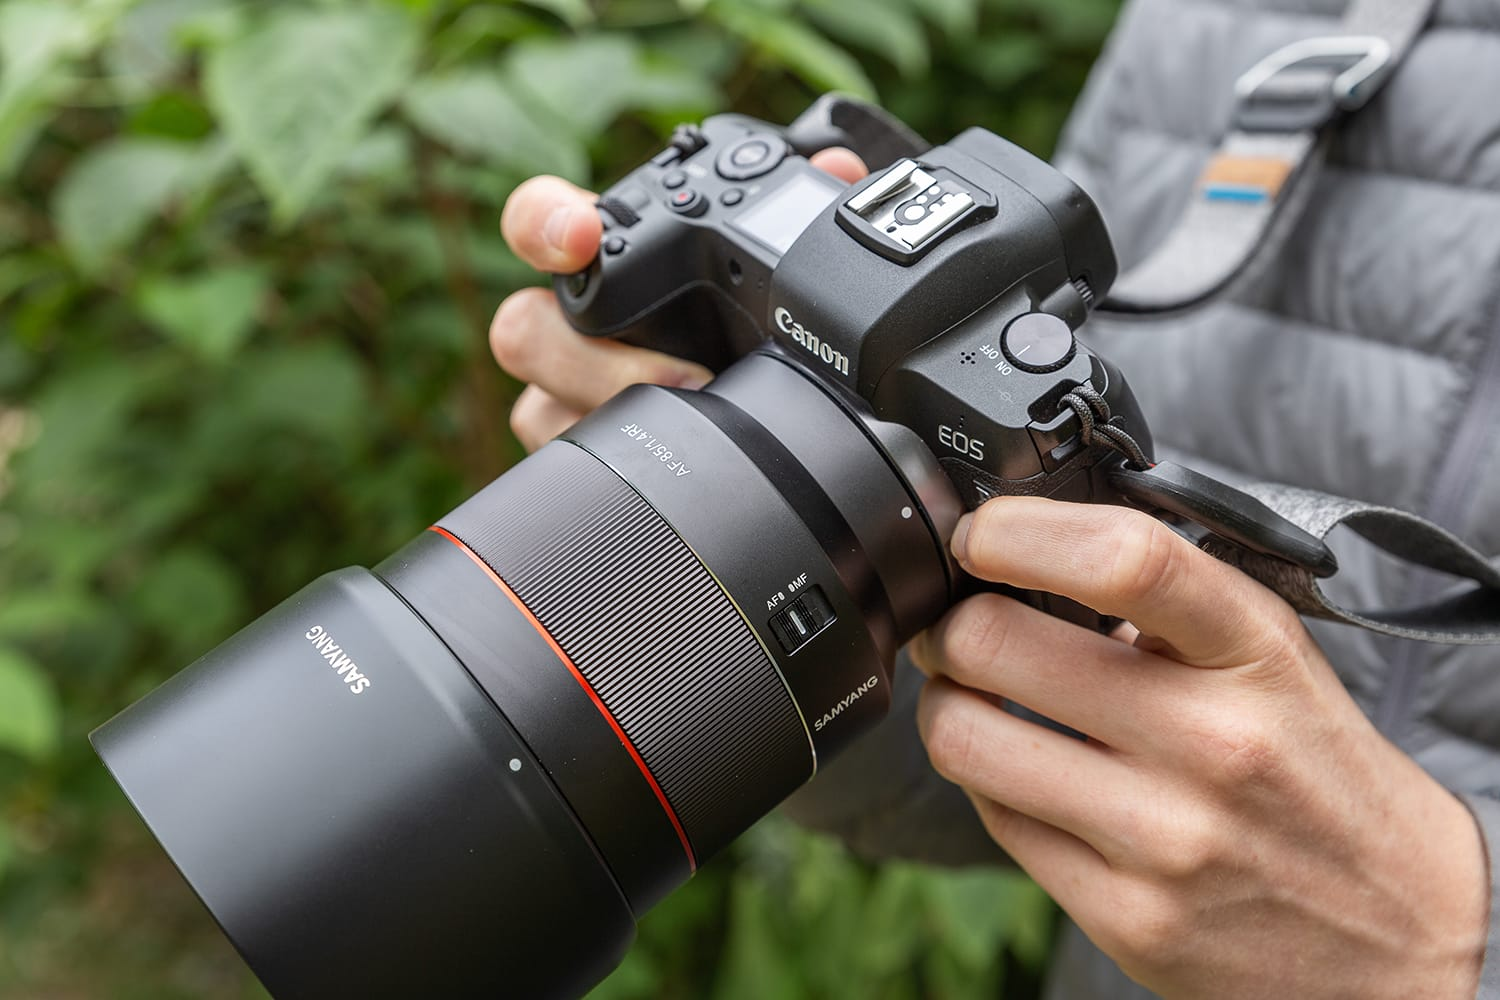 Hands-On Review of the Samyang AF 85mm f/1.4 RF Lens For Canon EOS R